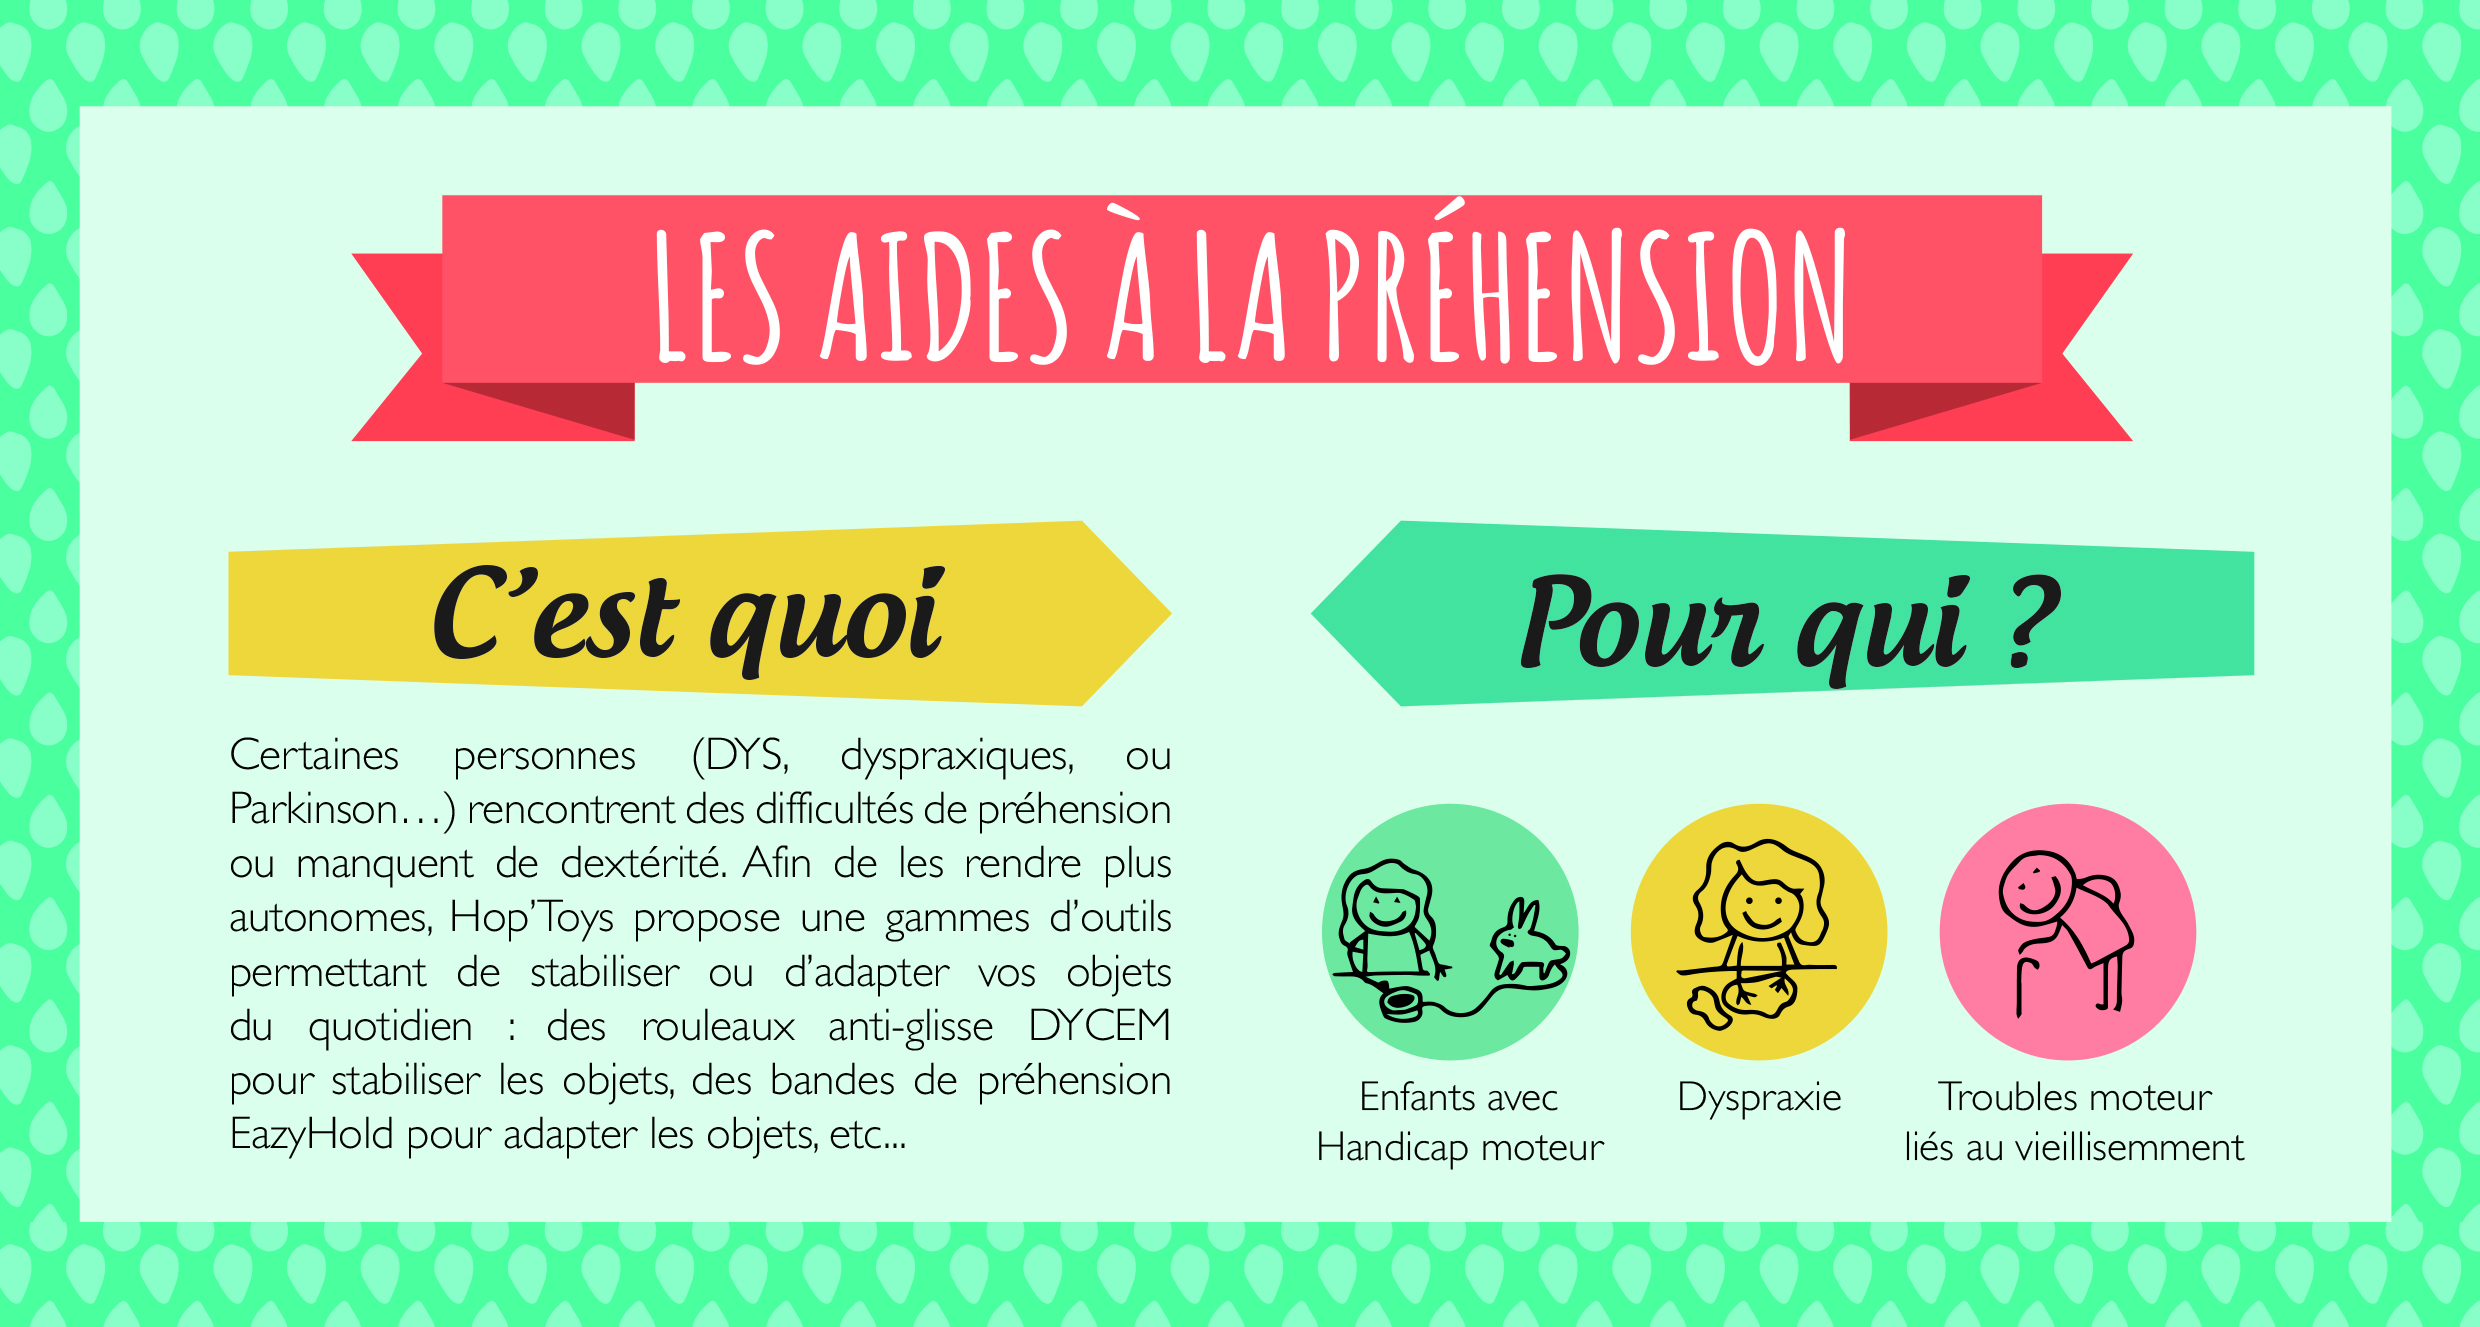 les_aides_a_la_prehension